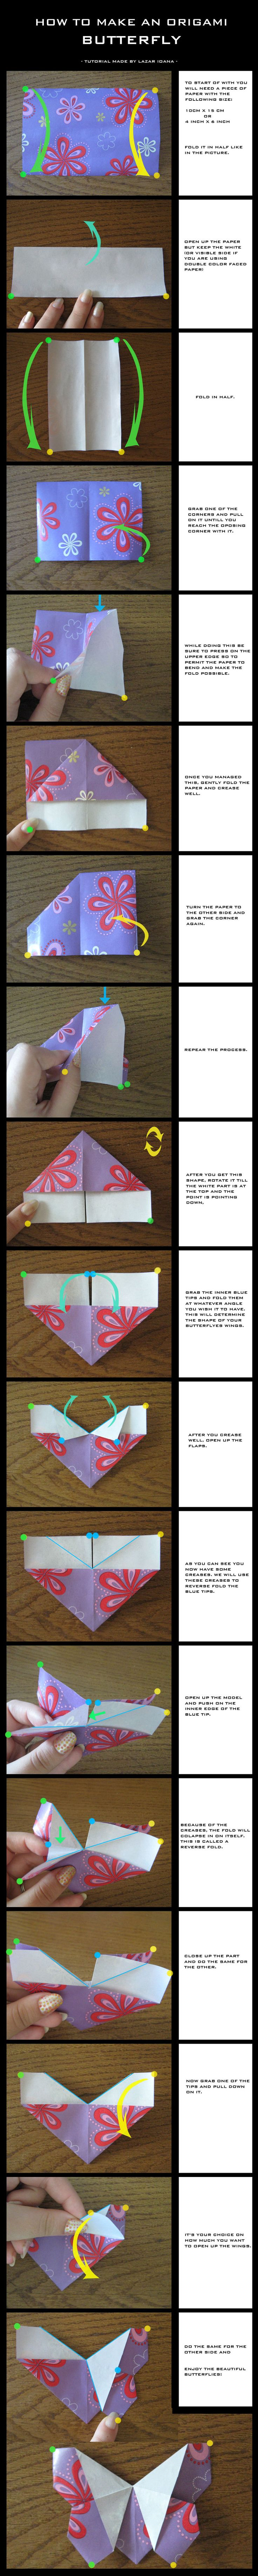 Tutorial: Origami Butterfly by DarkUmah.deviantart.com on @deviantART